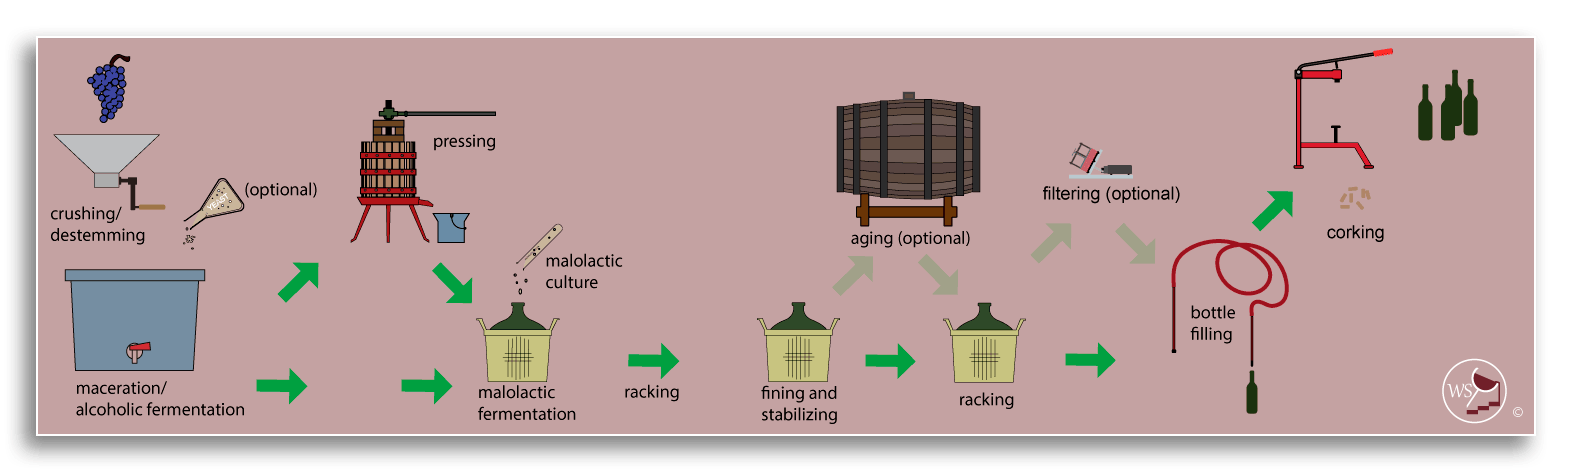 Infographic showing workflow for making wine from fresh red grapes